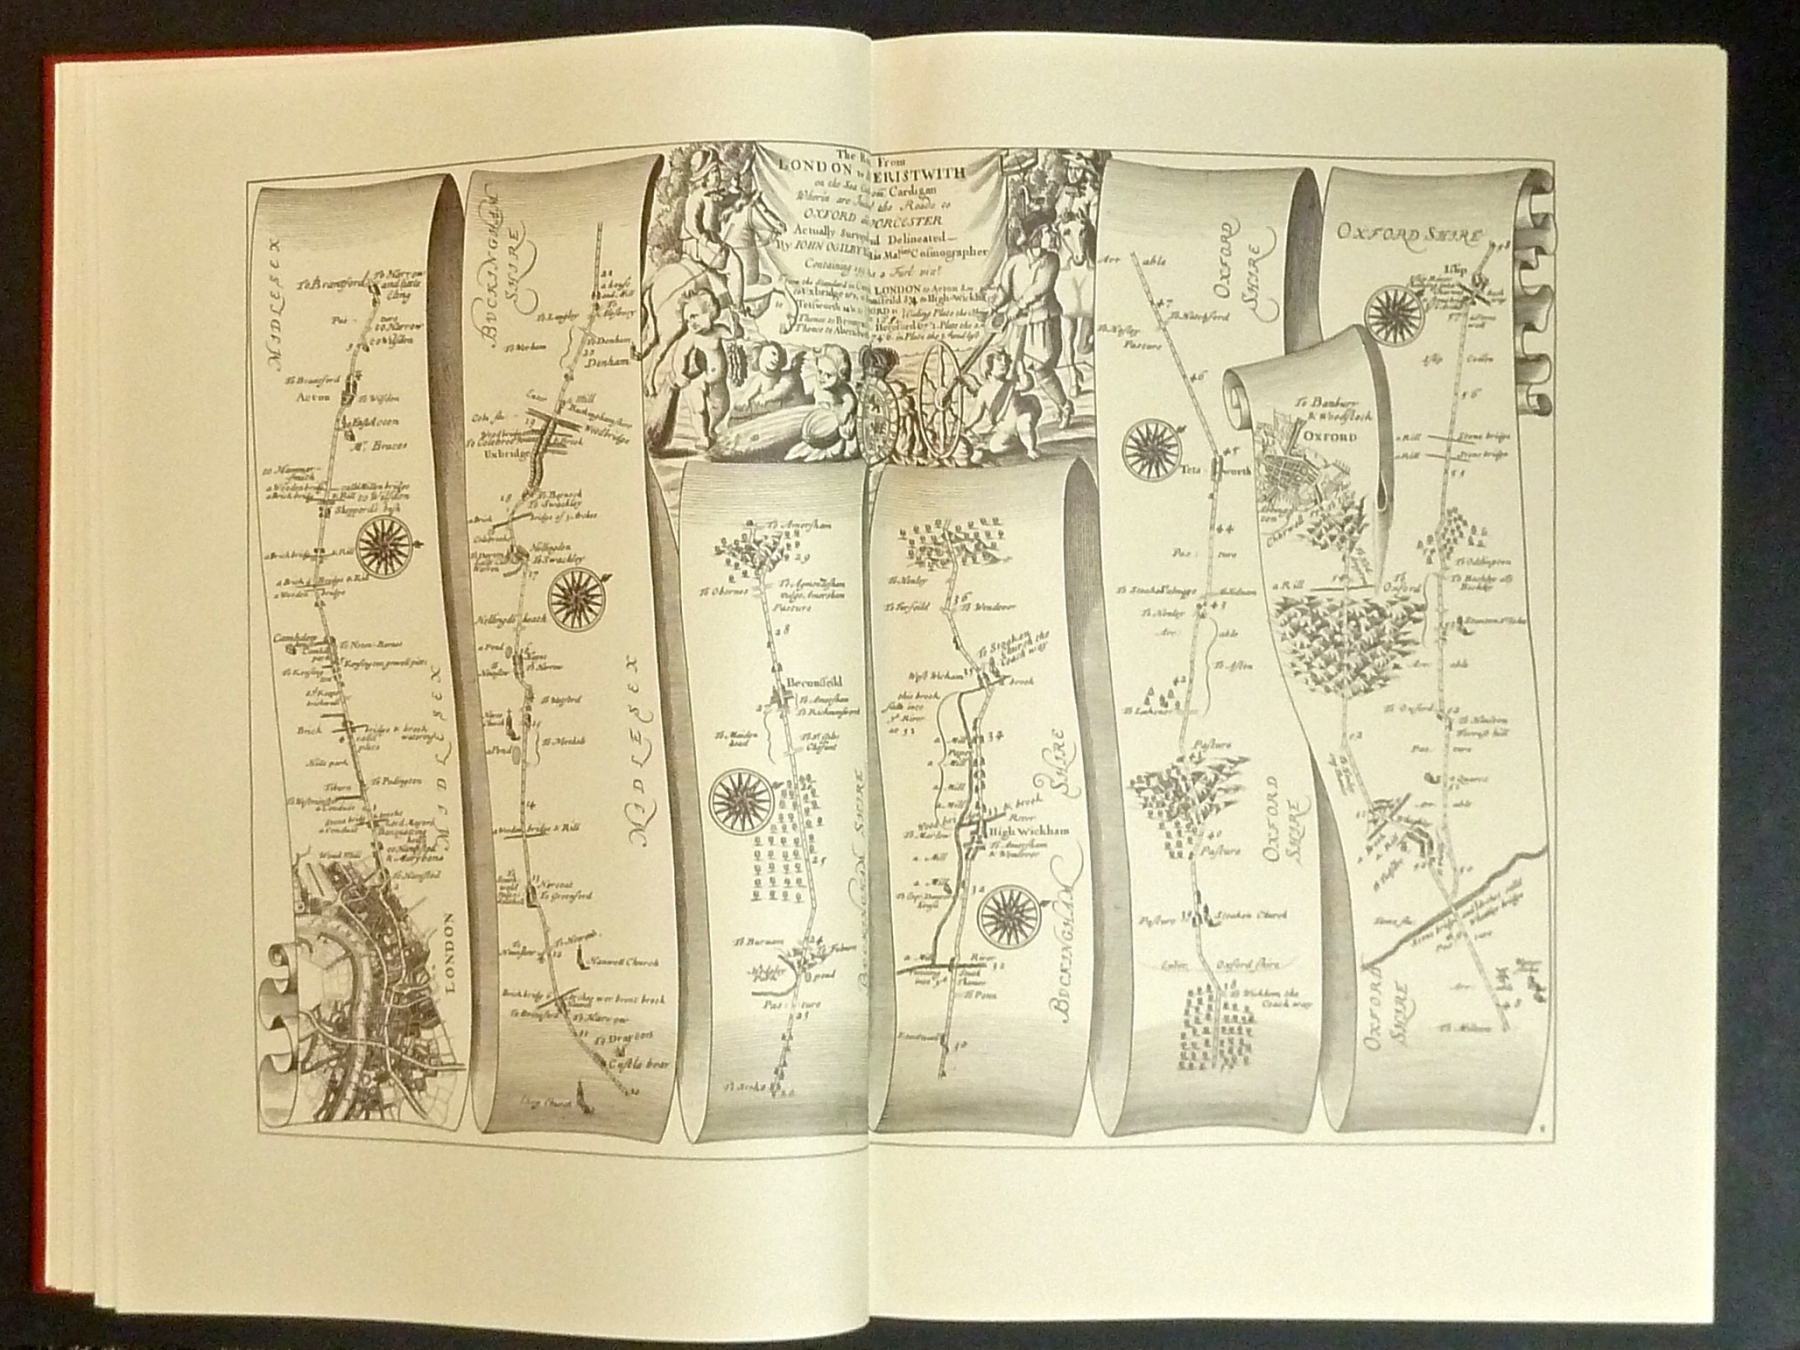 Ogilby's Road Maps